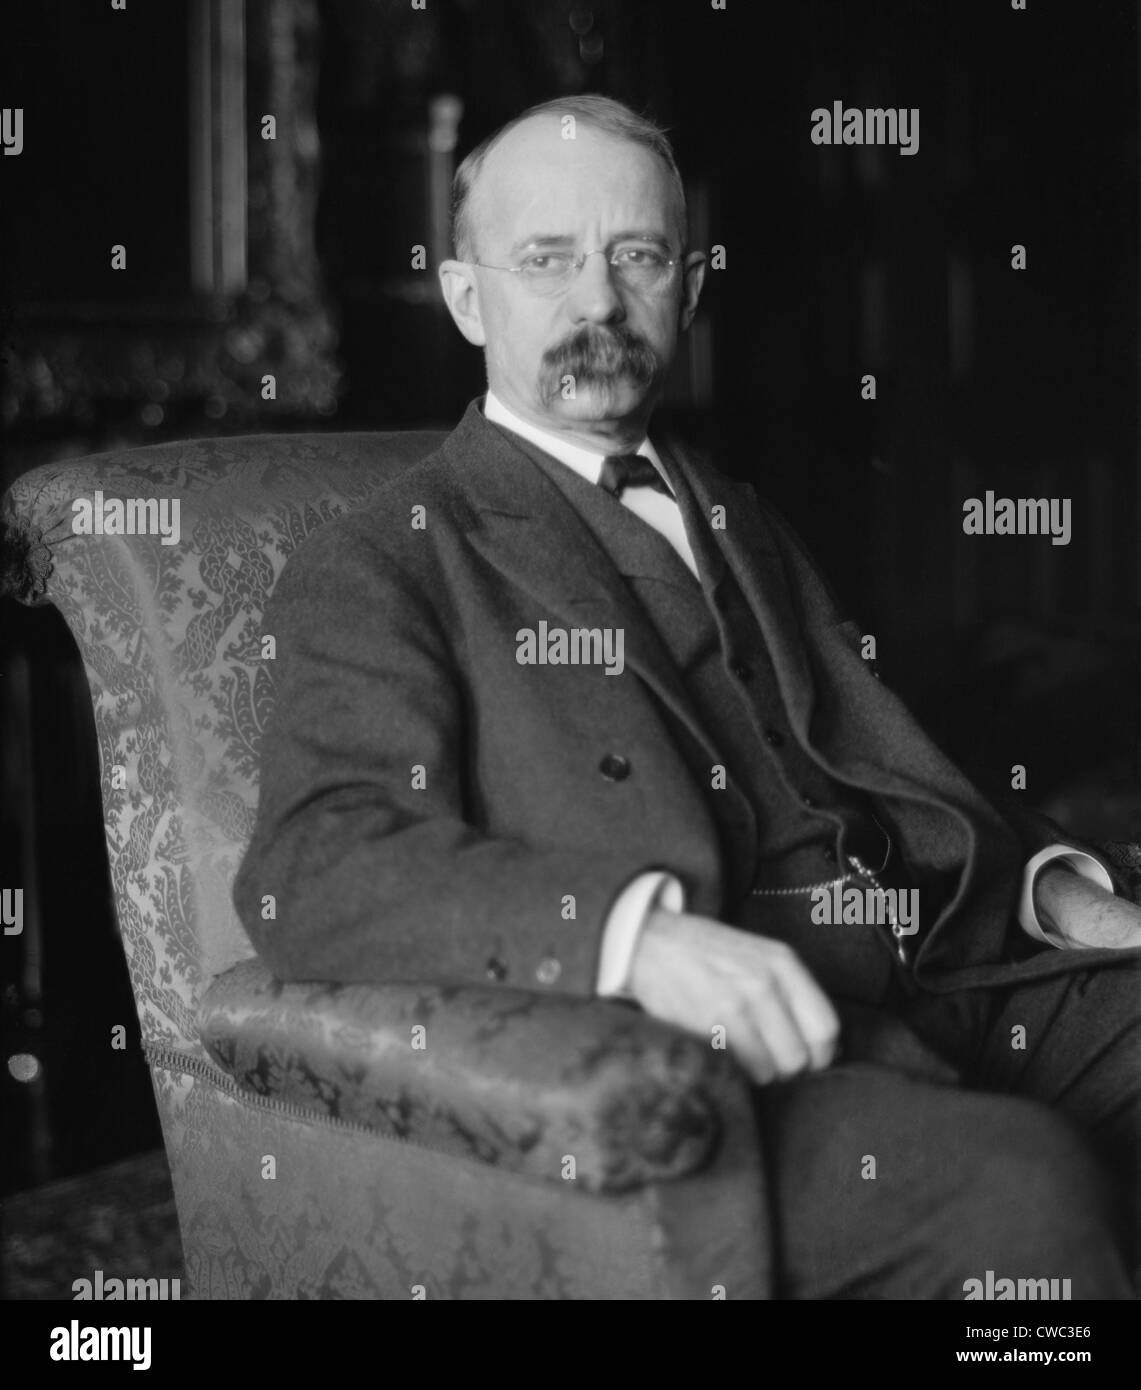 Edward Harriman 1848-1909 was the aggressive director of the Union Pacific Railroad from 1897 until his death. He - Stock Image